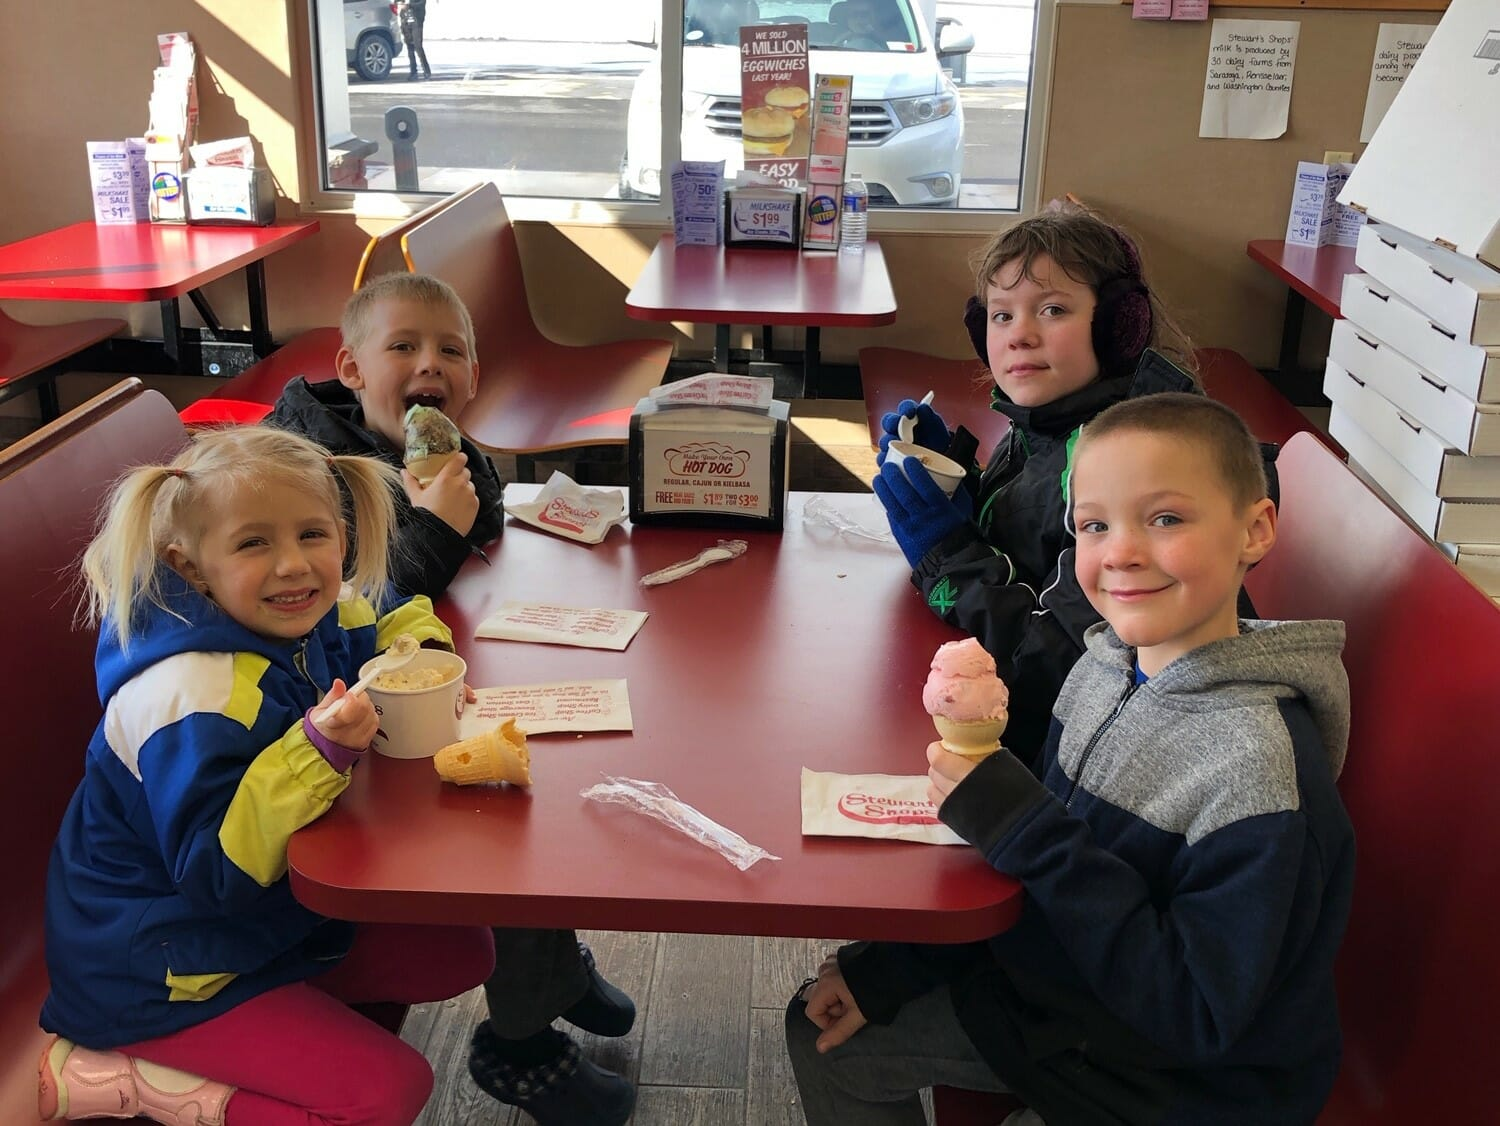 Four children sitting at a booth enjoying ice cream cones